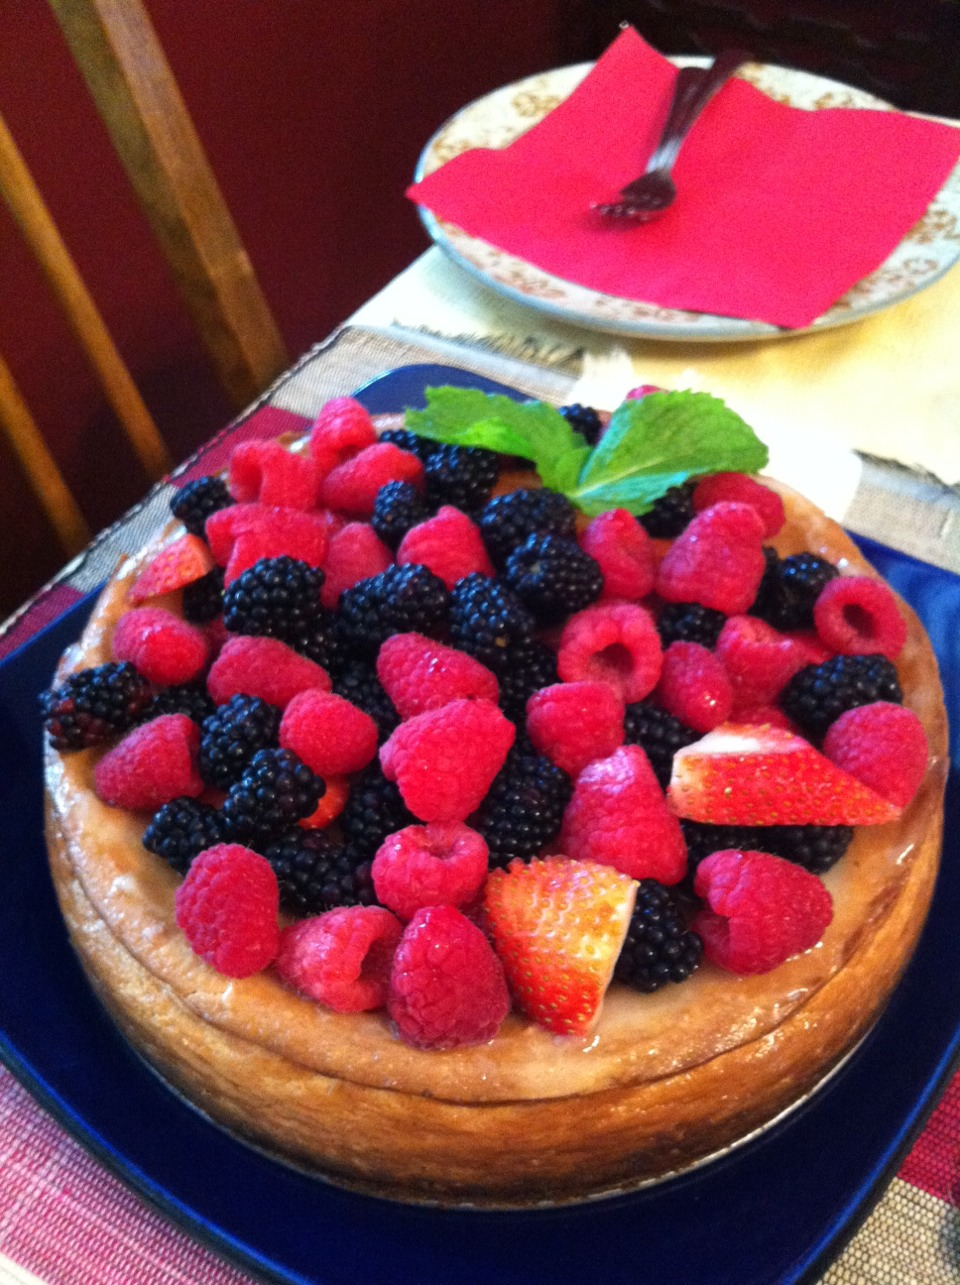 Adding fresh fruit to your baked goods not only adds beautiful colours but also a great taste and bakery appearance.